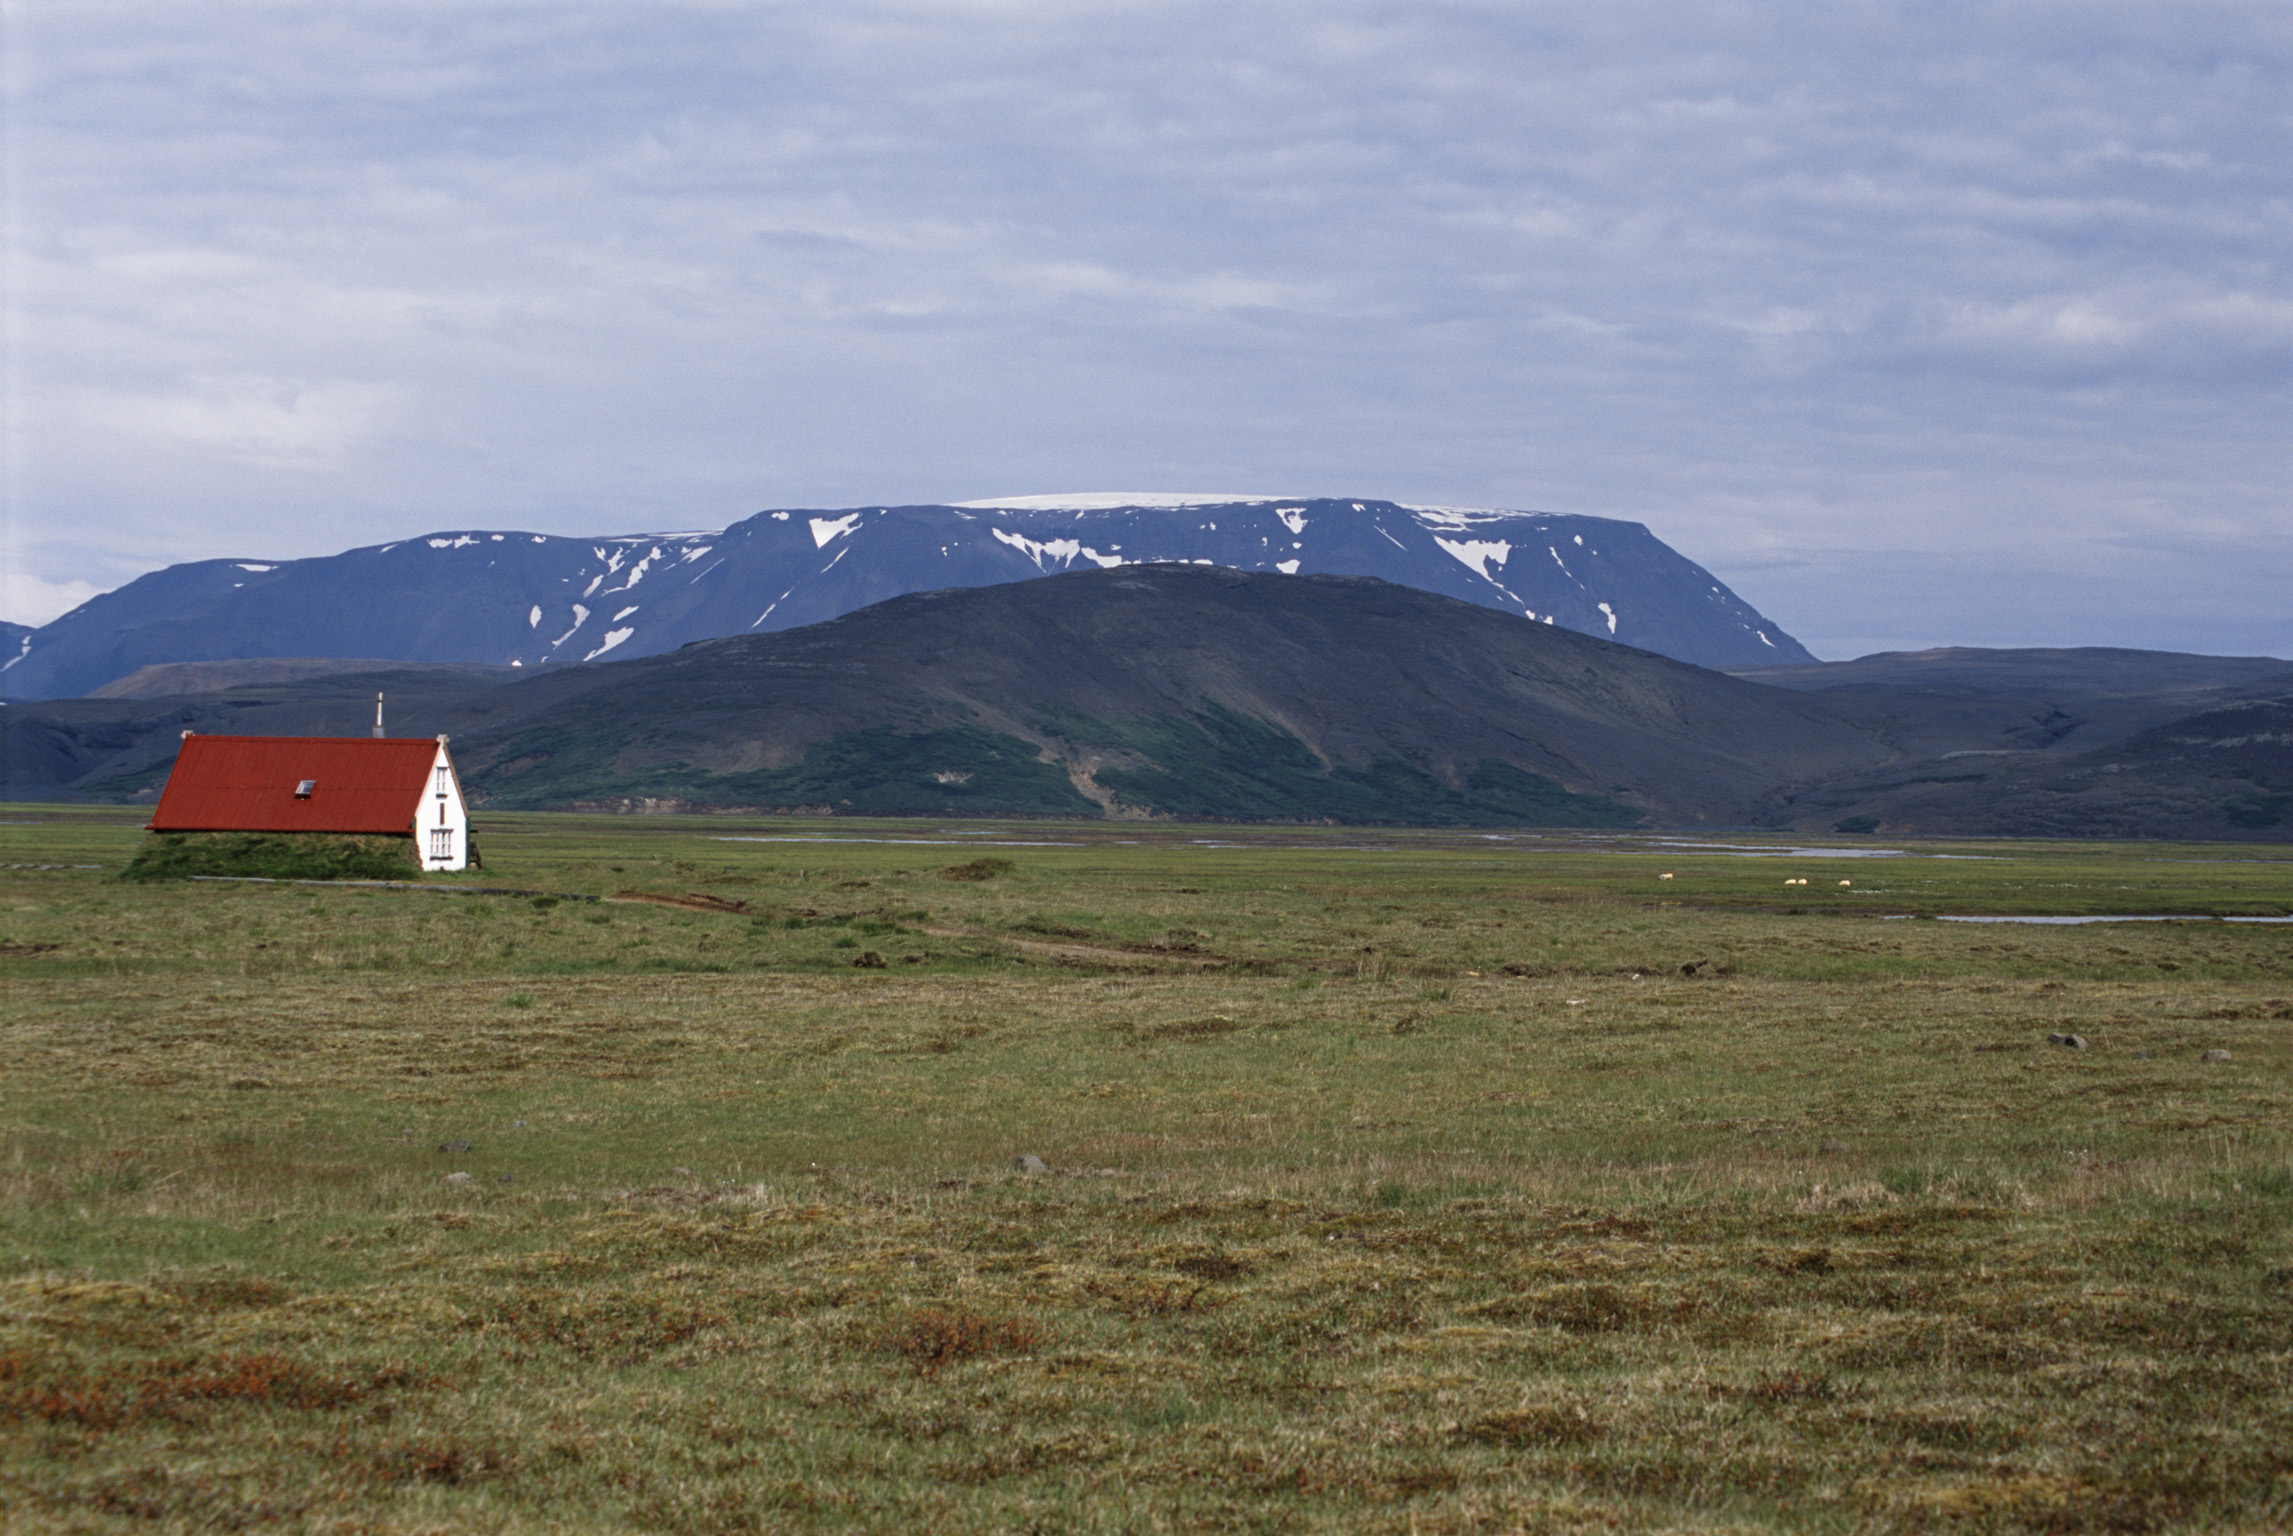 Remote red roofed hut in Iceland standing in open grassland with distant snow covered mountain peaks